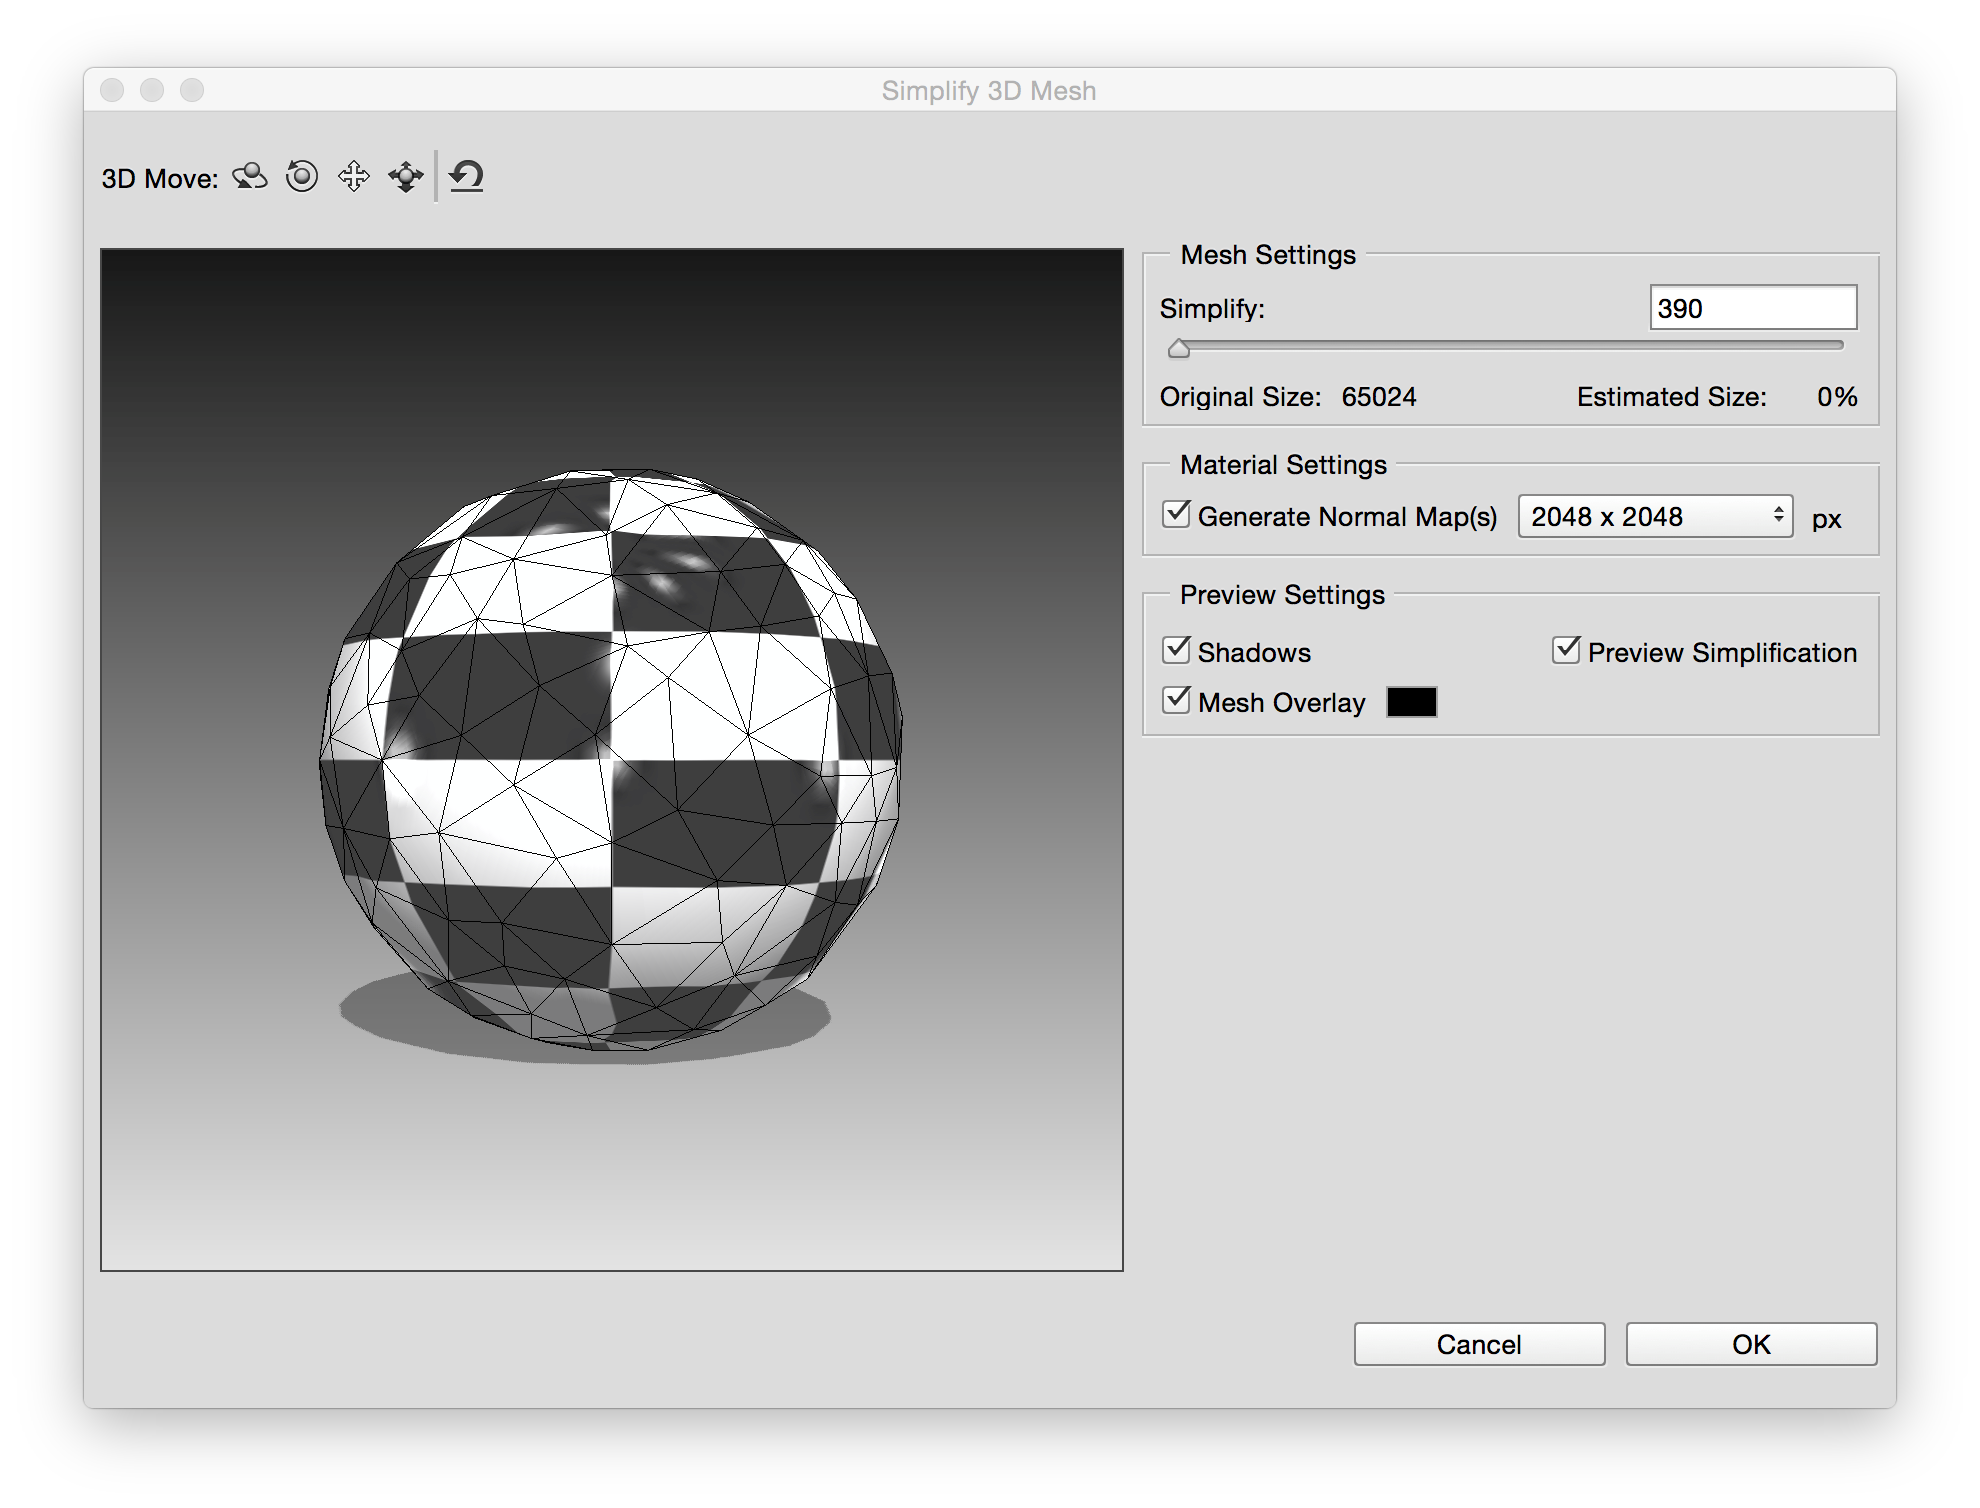 Photoshop Preview of mesh simplification changes